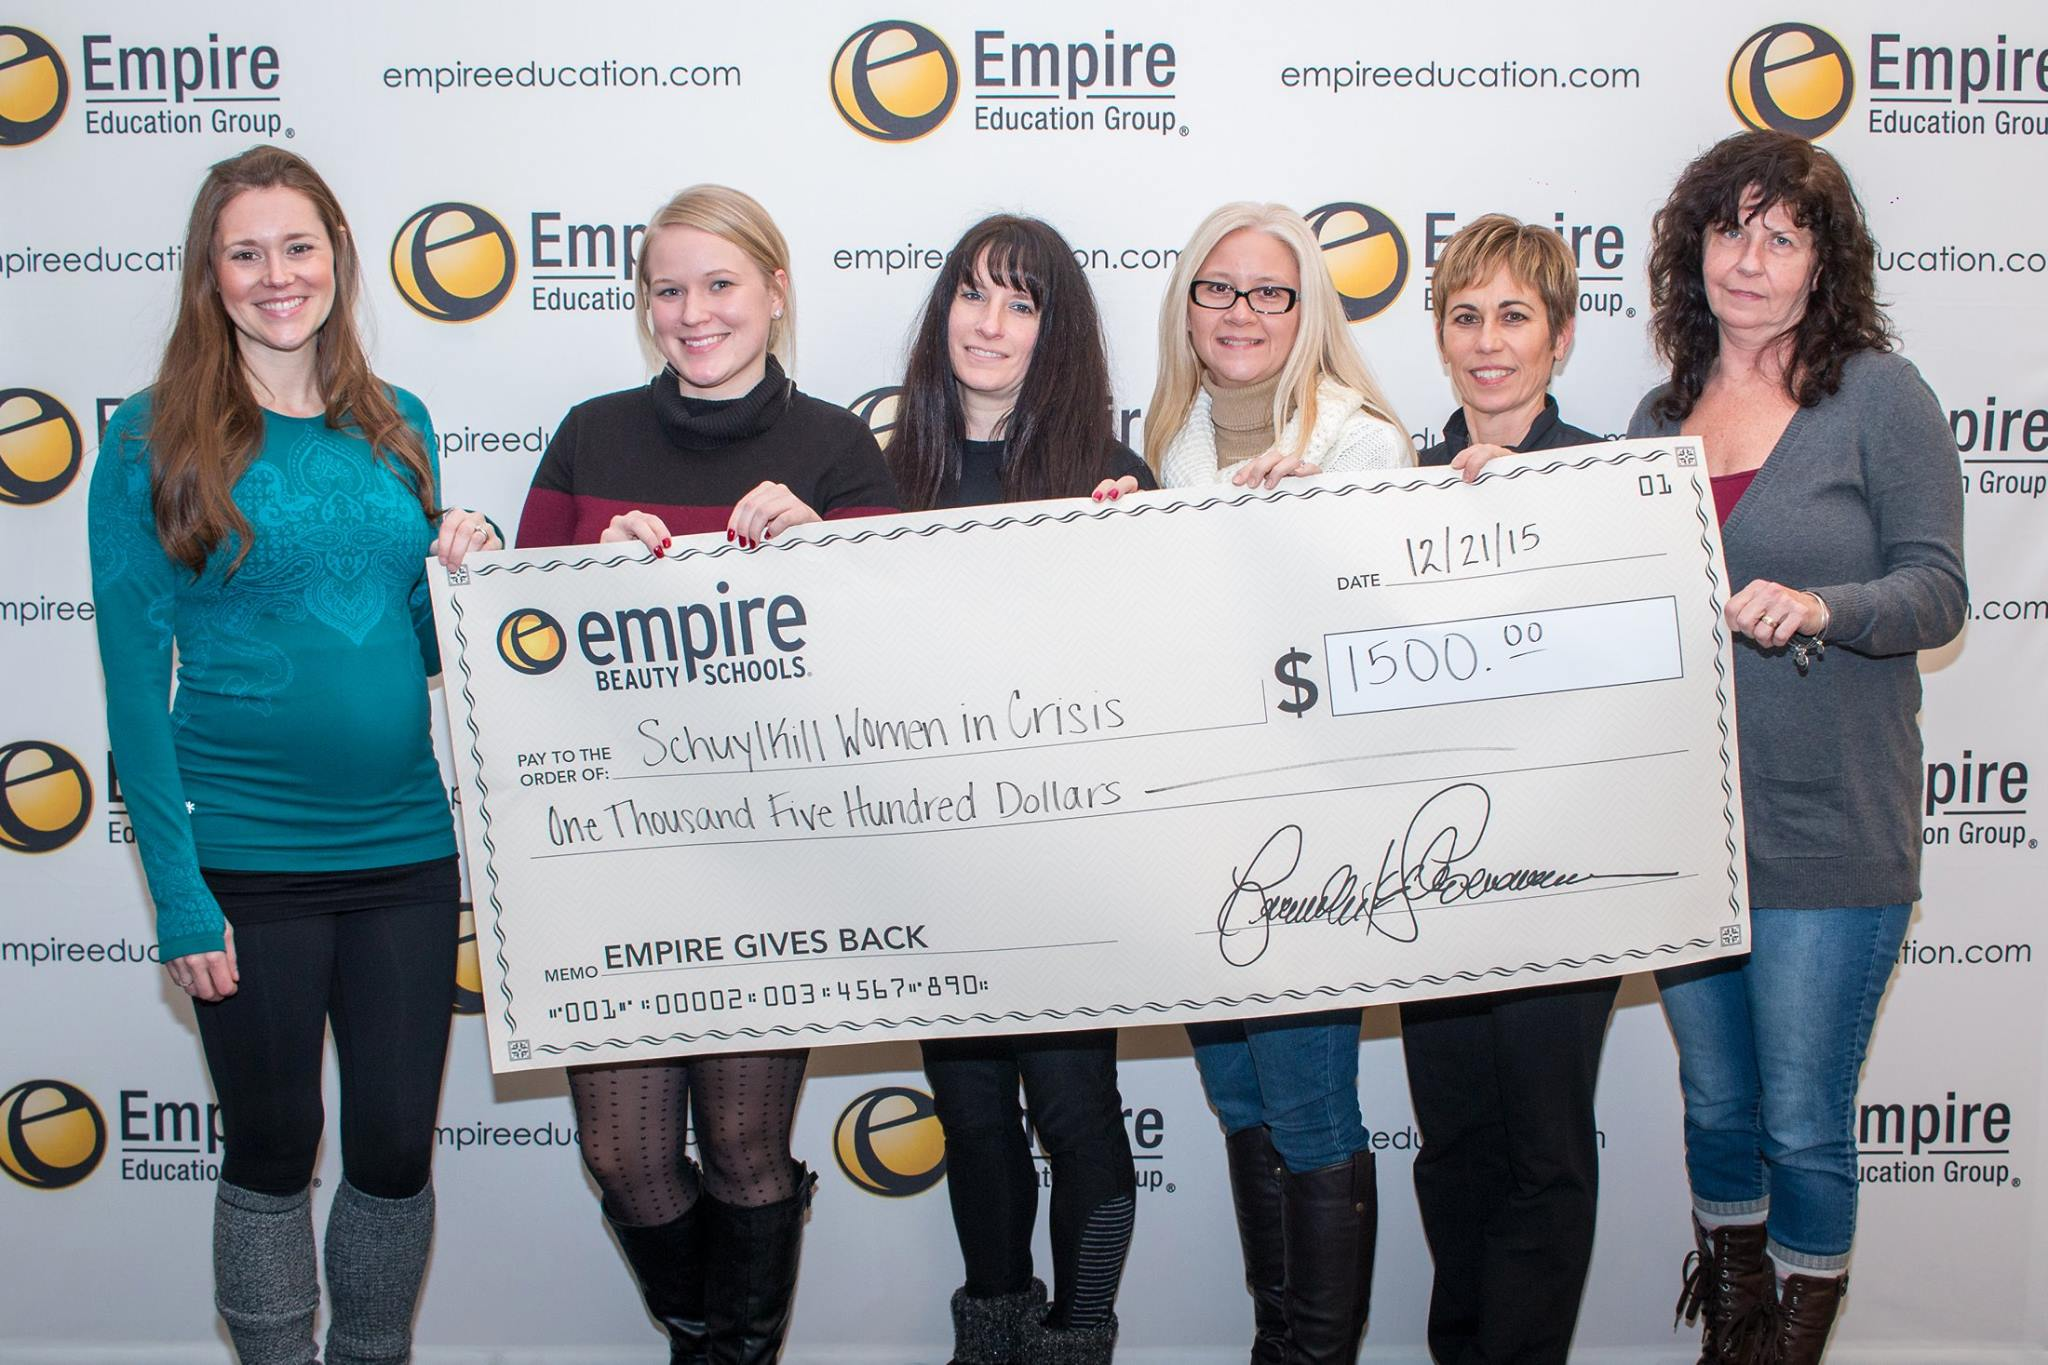 Yoga Fundraiser for Schuylkill Women in Crisis - pictured here Empire Education Group Co-Workers